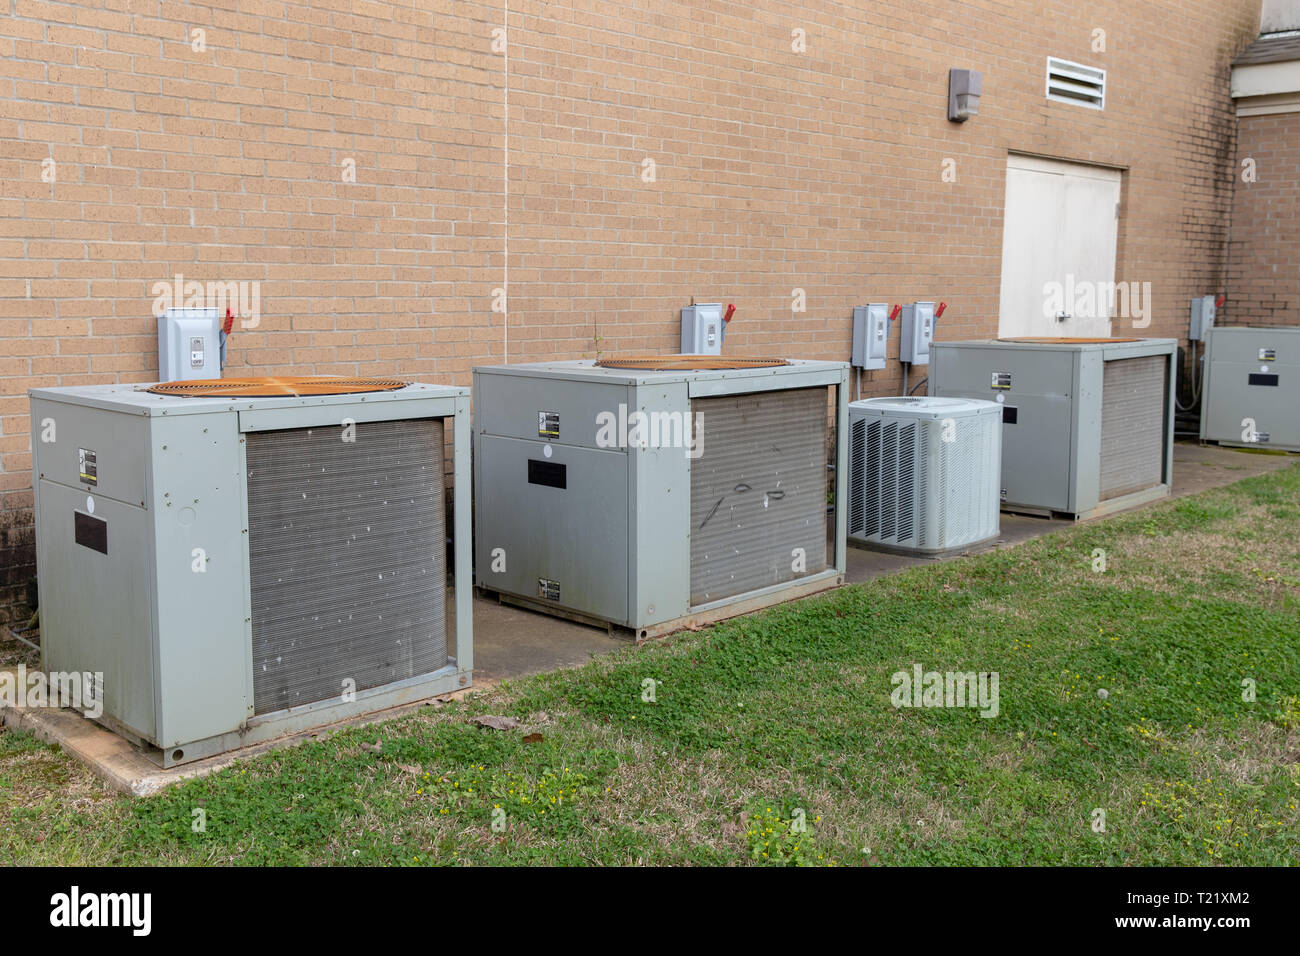 Commercial Air Conditioner compressors outside of brick building Stock Photo